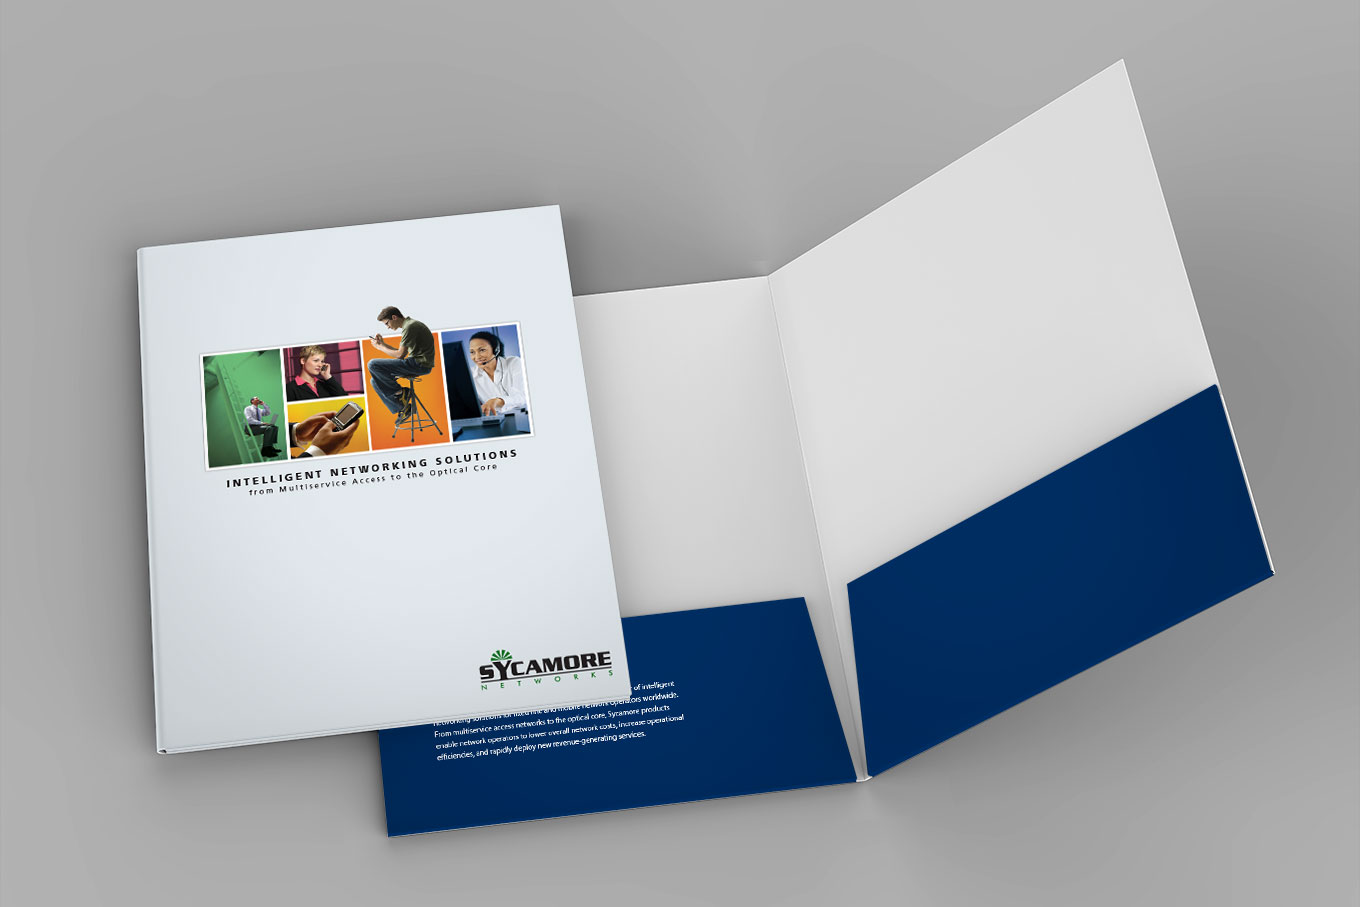 Sycamore Networks, Inc. - Presentation Folder